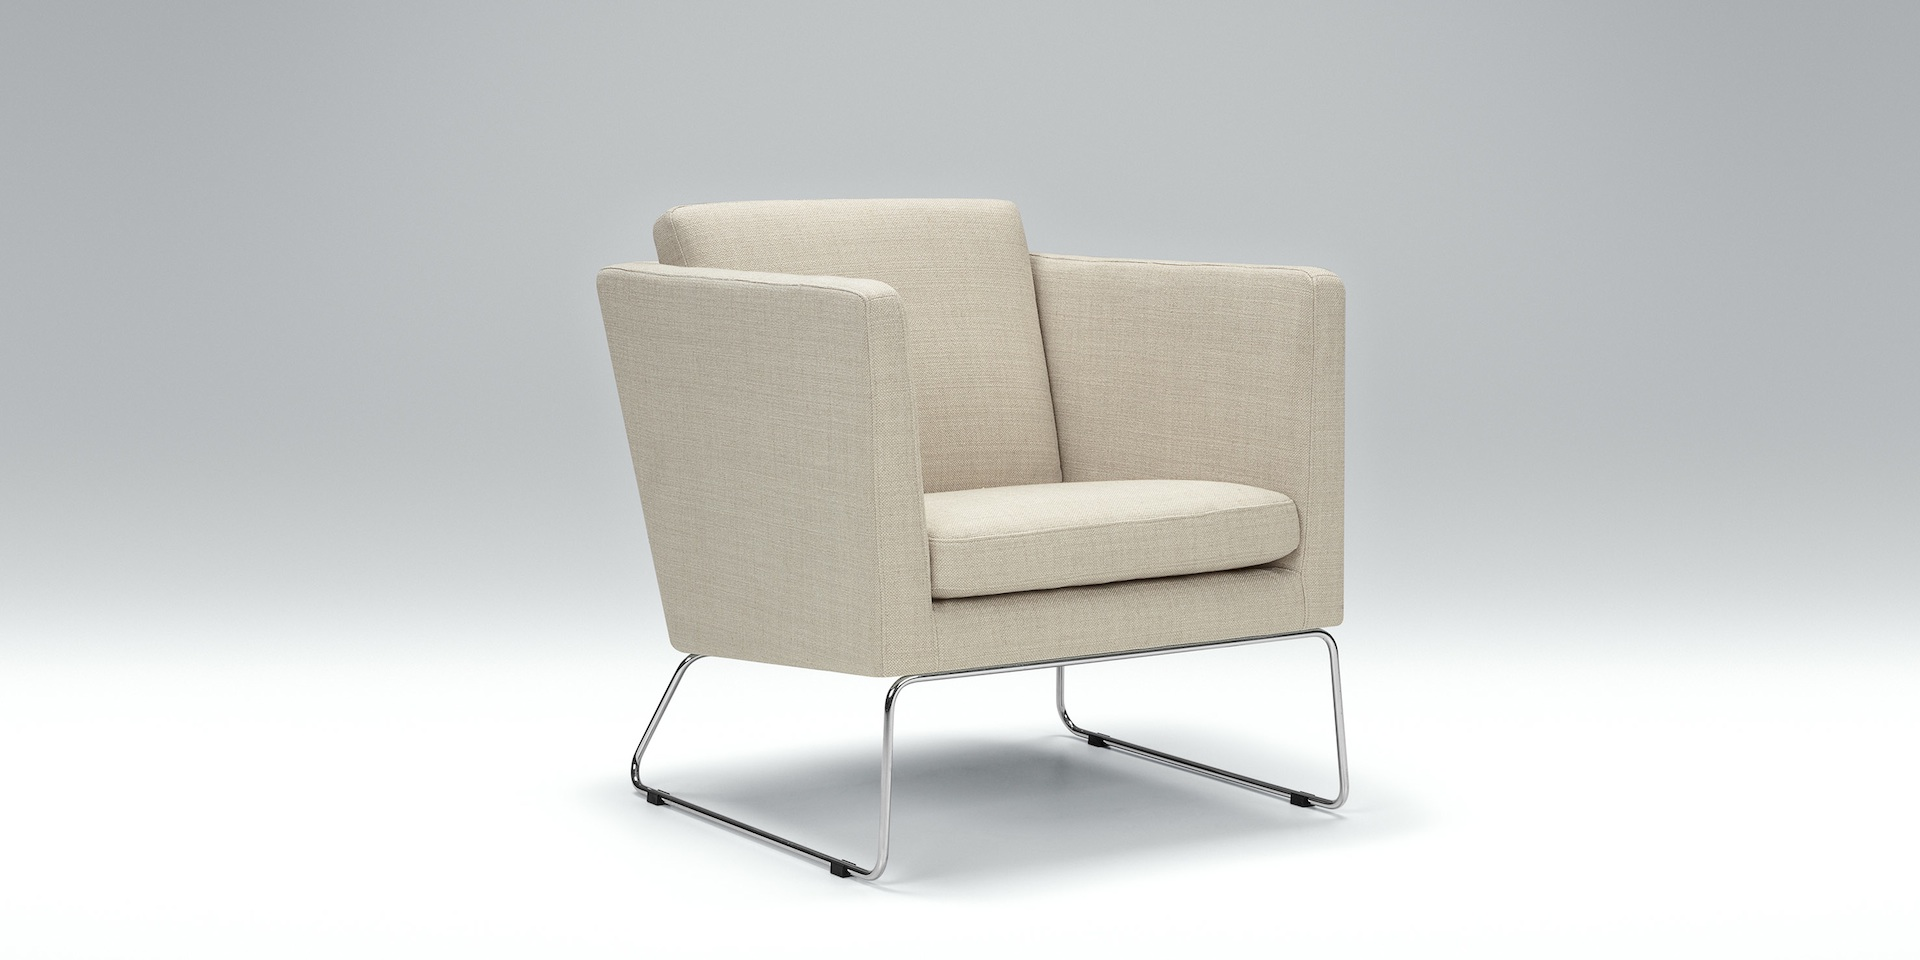 CLARK_shadow_armchair_cortina2_light_beige_2